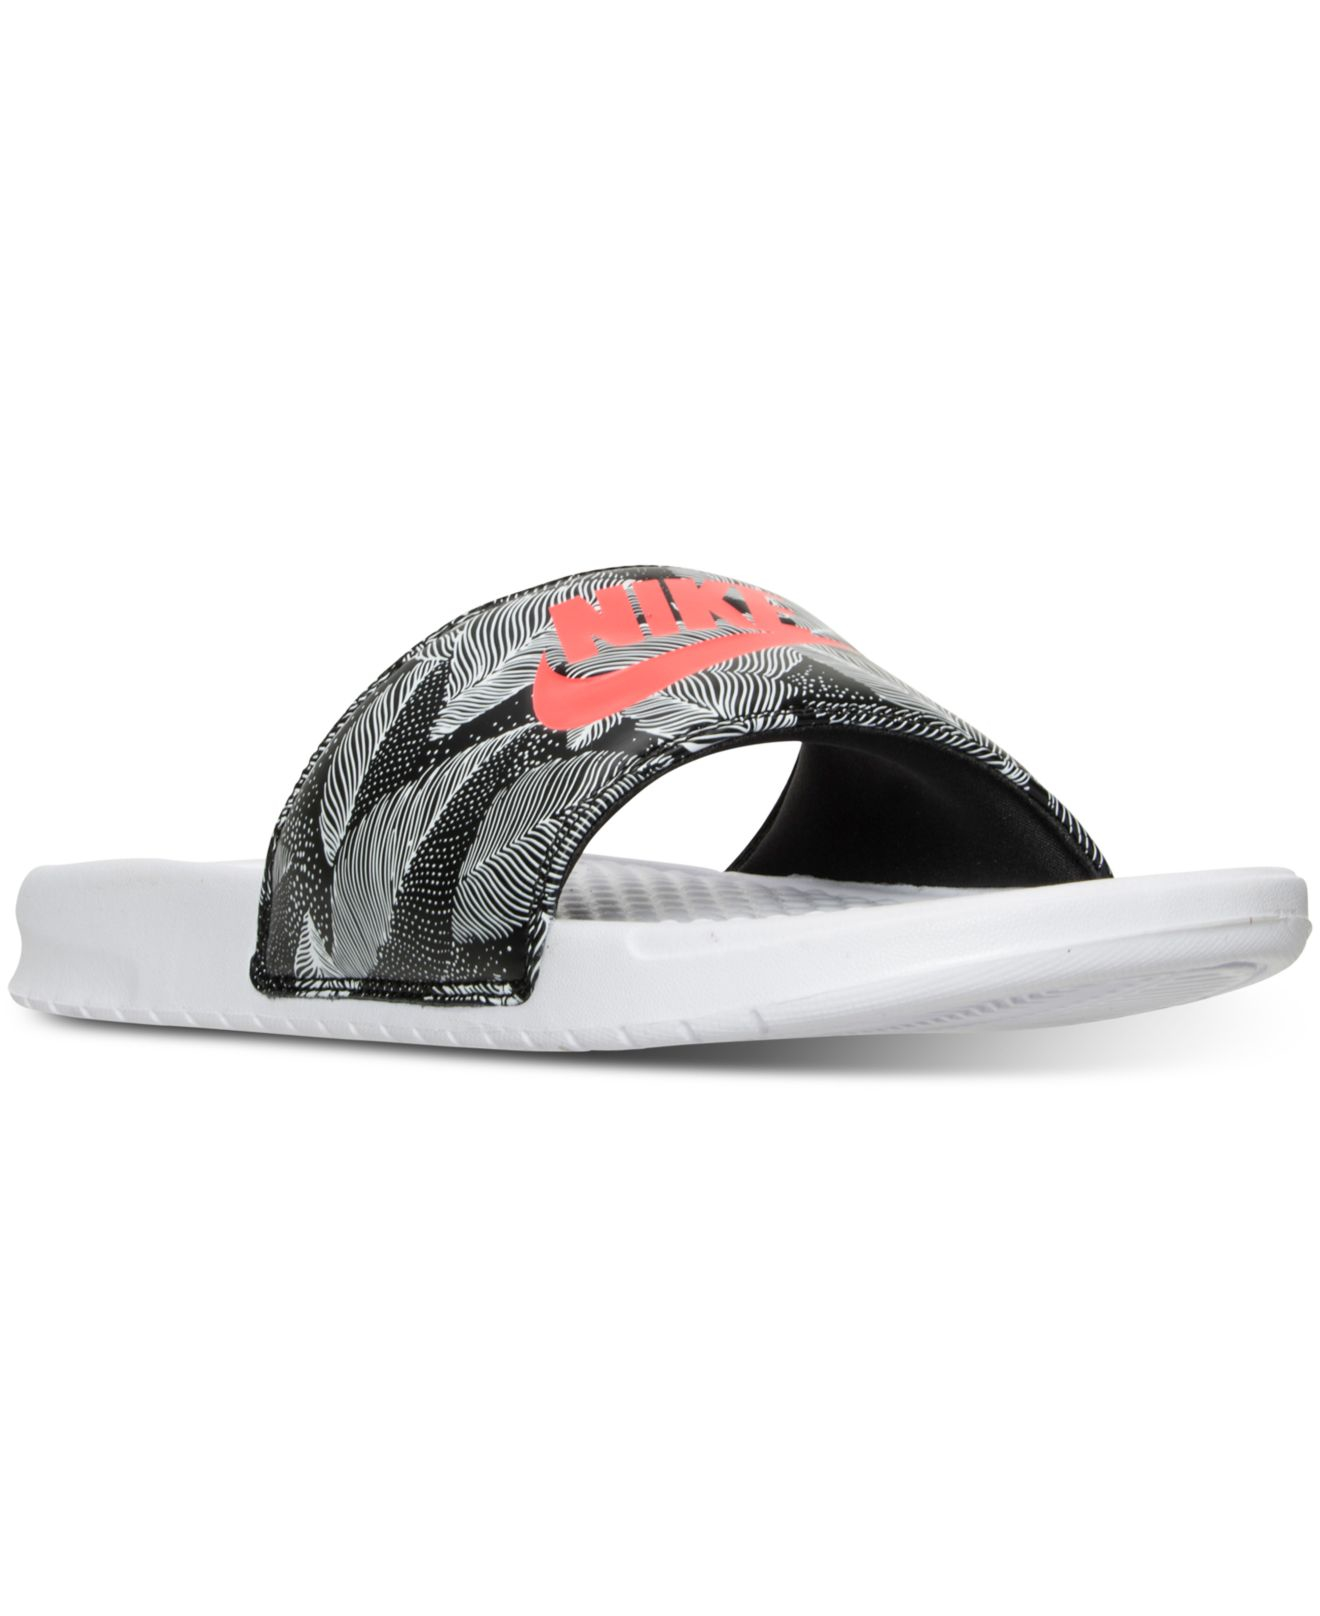 detailed look 82fe7 f50a9 Nike Men s Benassi Jdi Print Slide Sandals From Finish Line in White ...